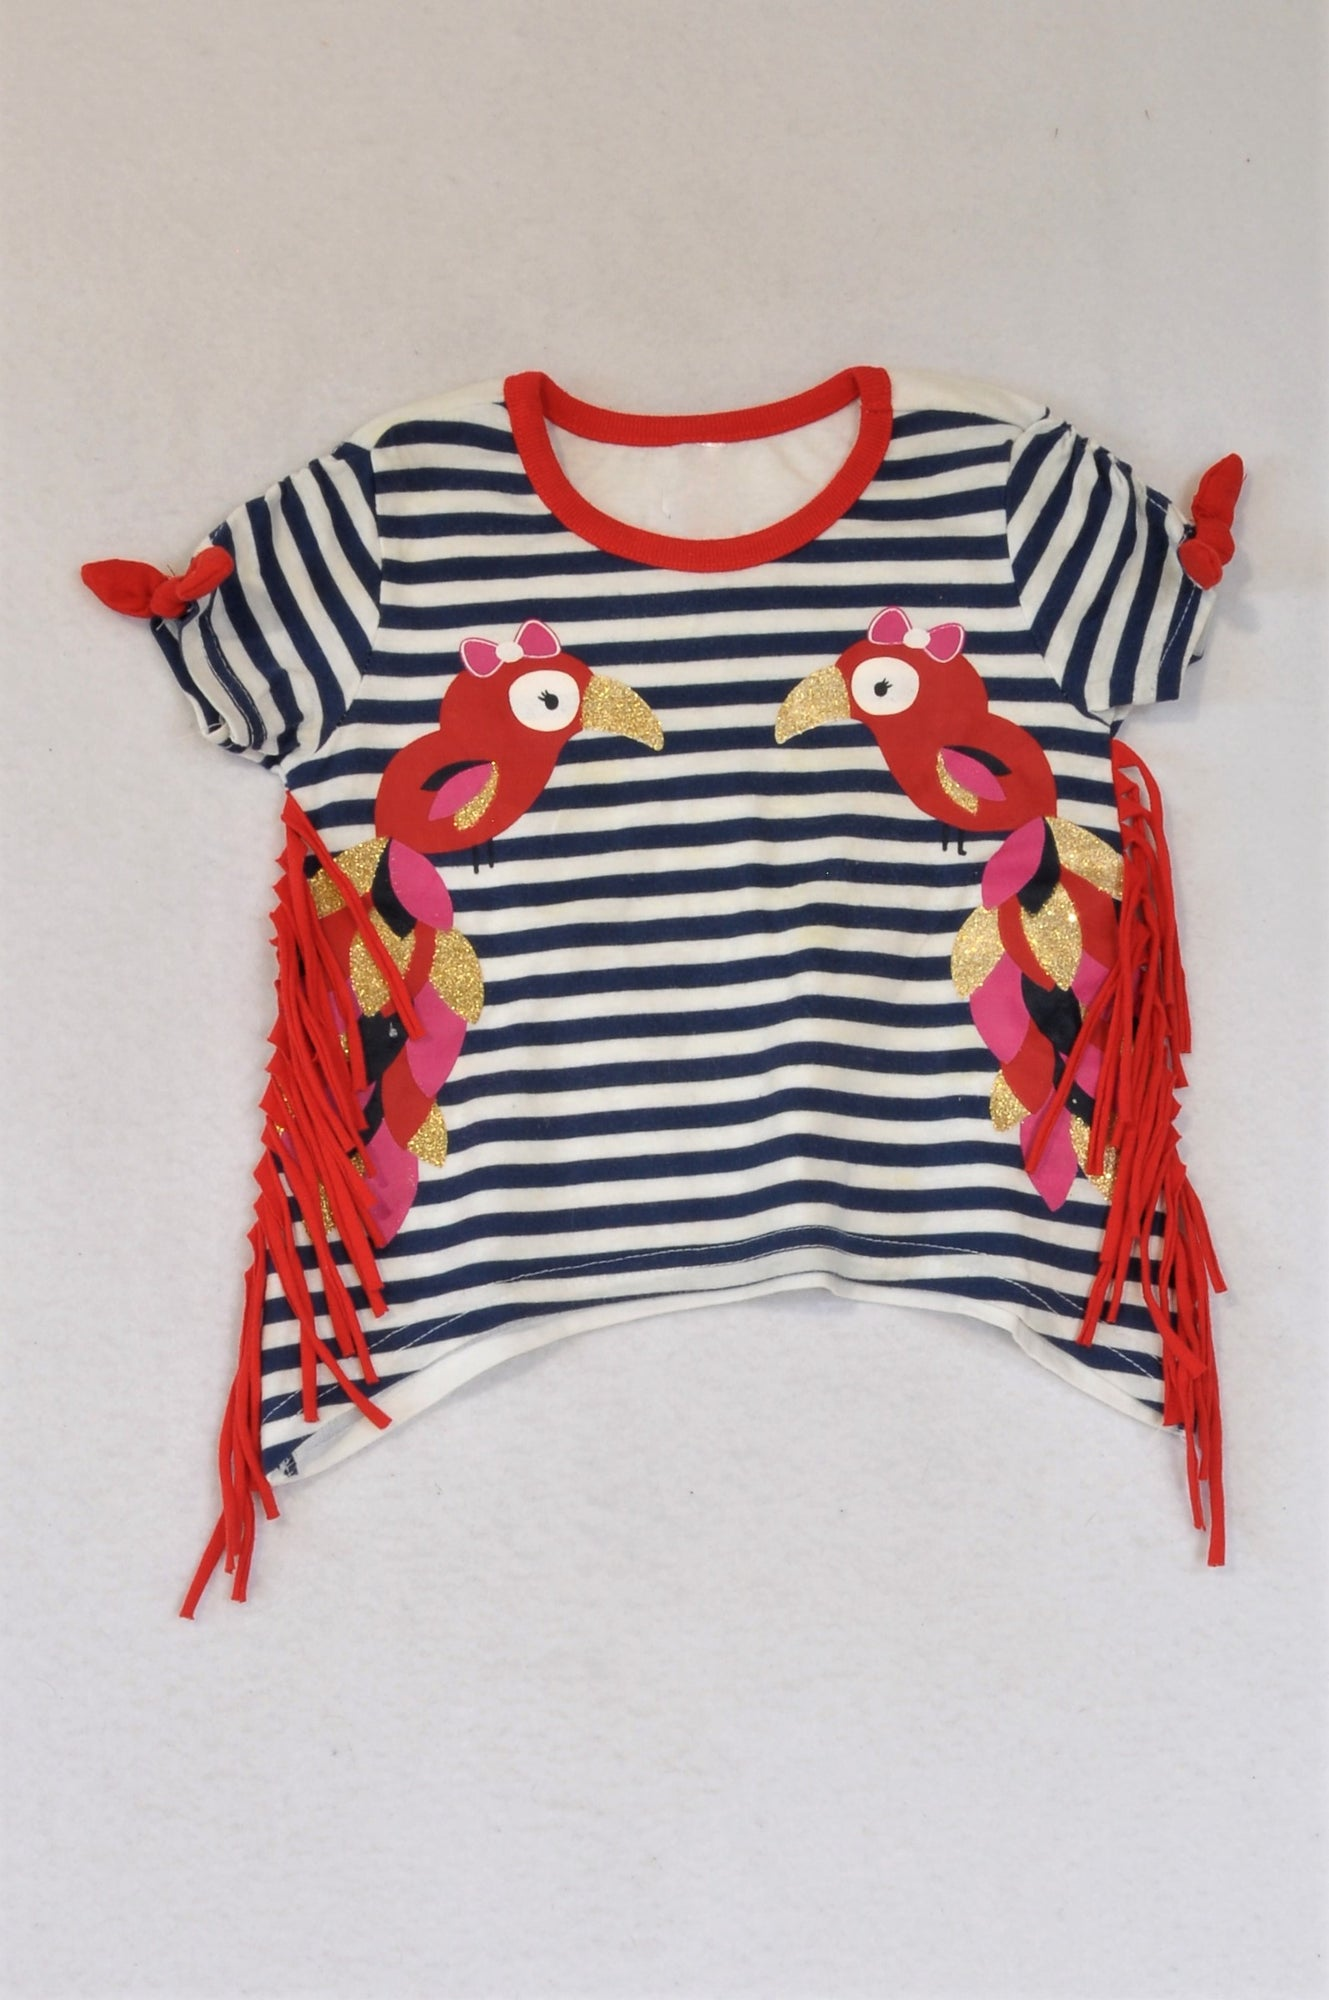 Unbranded Navy Striped Red Parrot Tassle T-shirt Girls 12-18 months